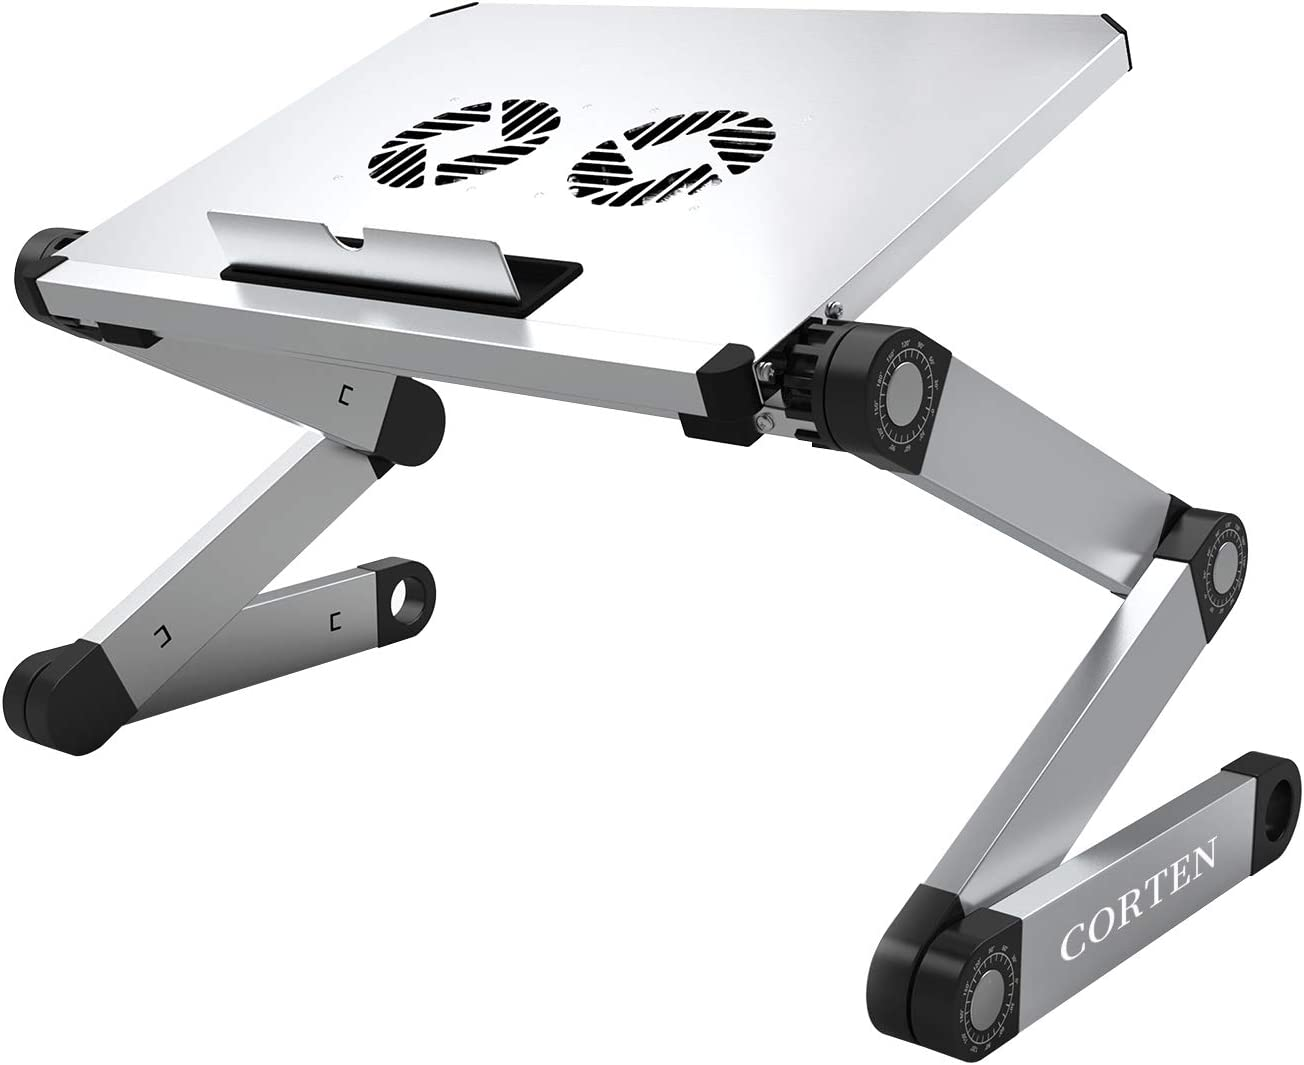 Ergonomic Portable Laptop Stand Table Desk Foldable Lap Tray for Bed Sofa Fully Adjustable Height and Angle Laptop Riser with USB Fans for Work from Home or Travel(Silver)